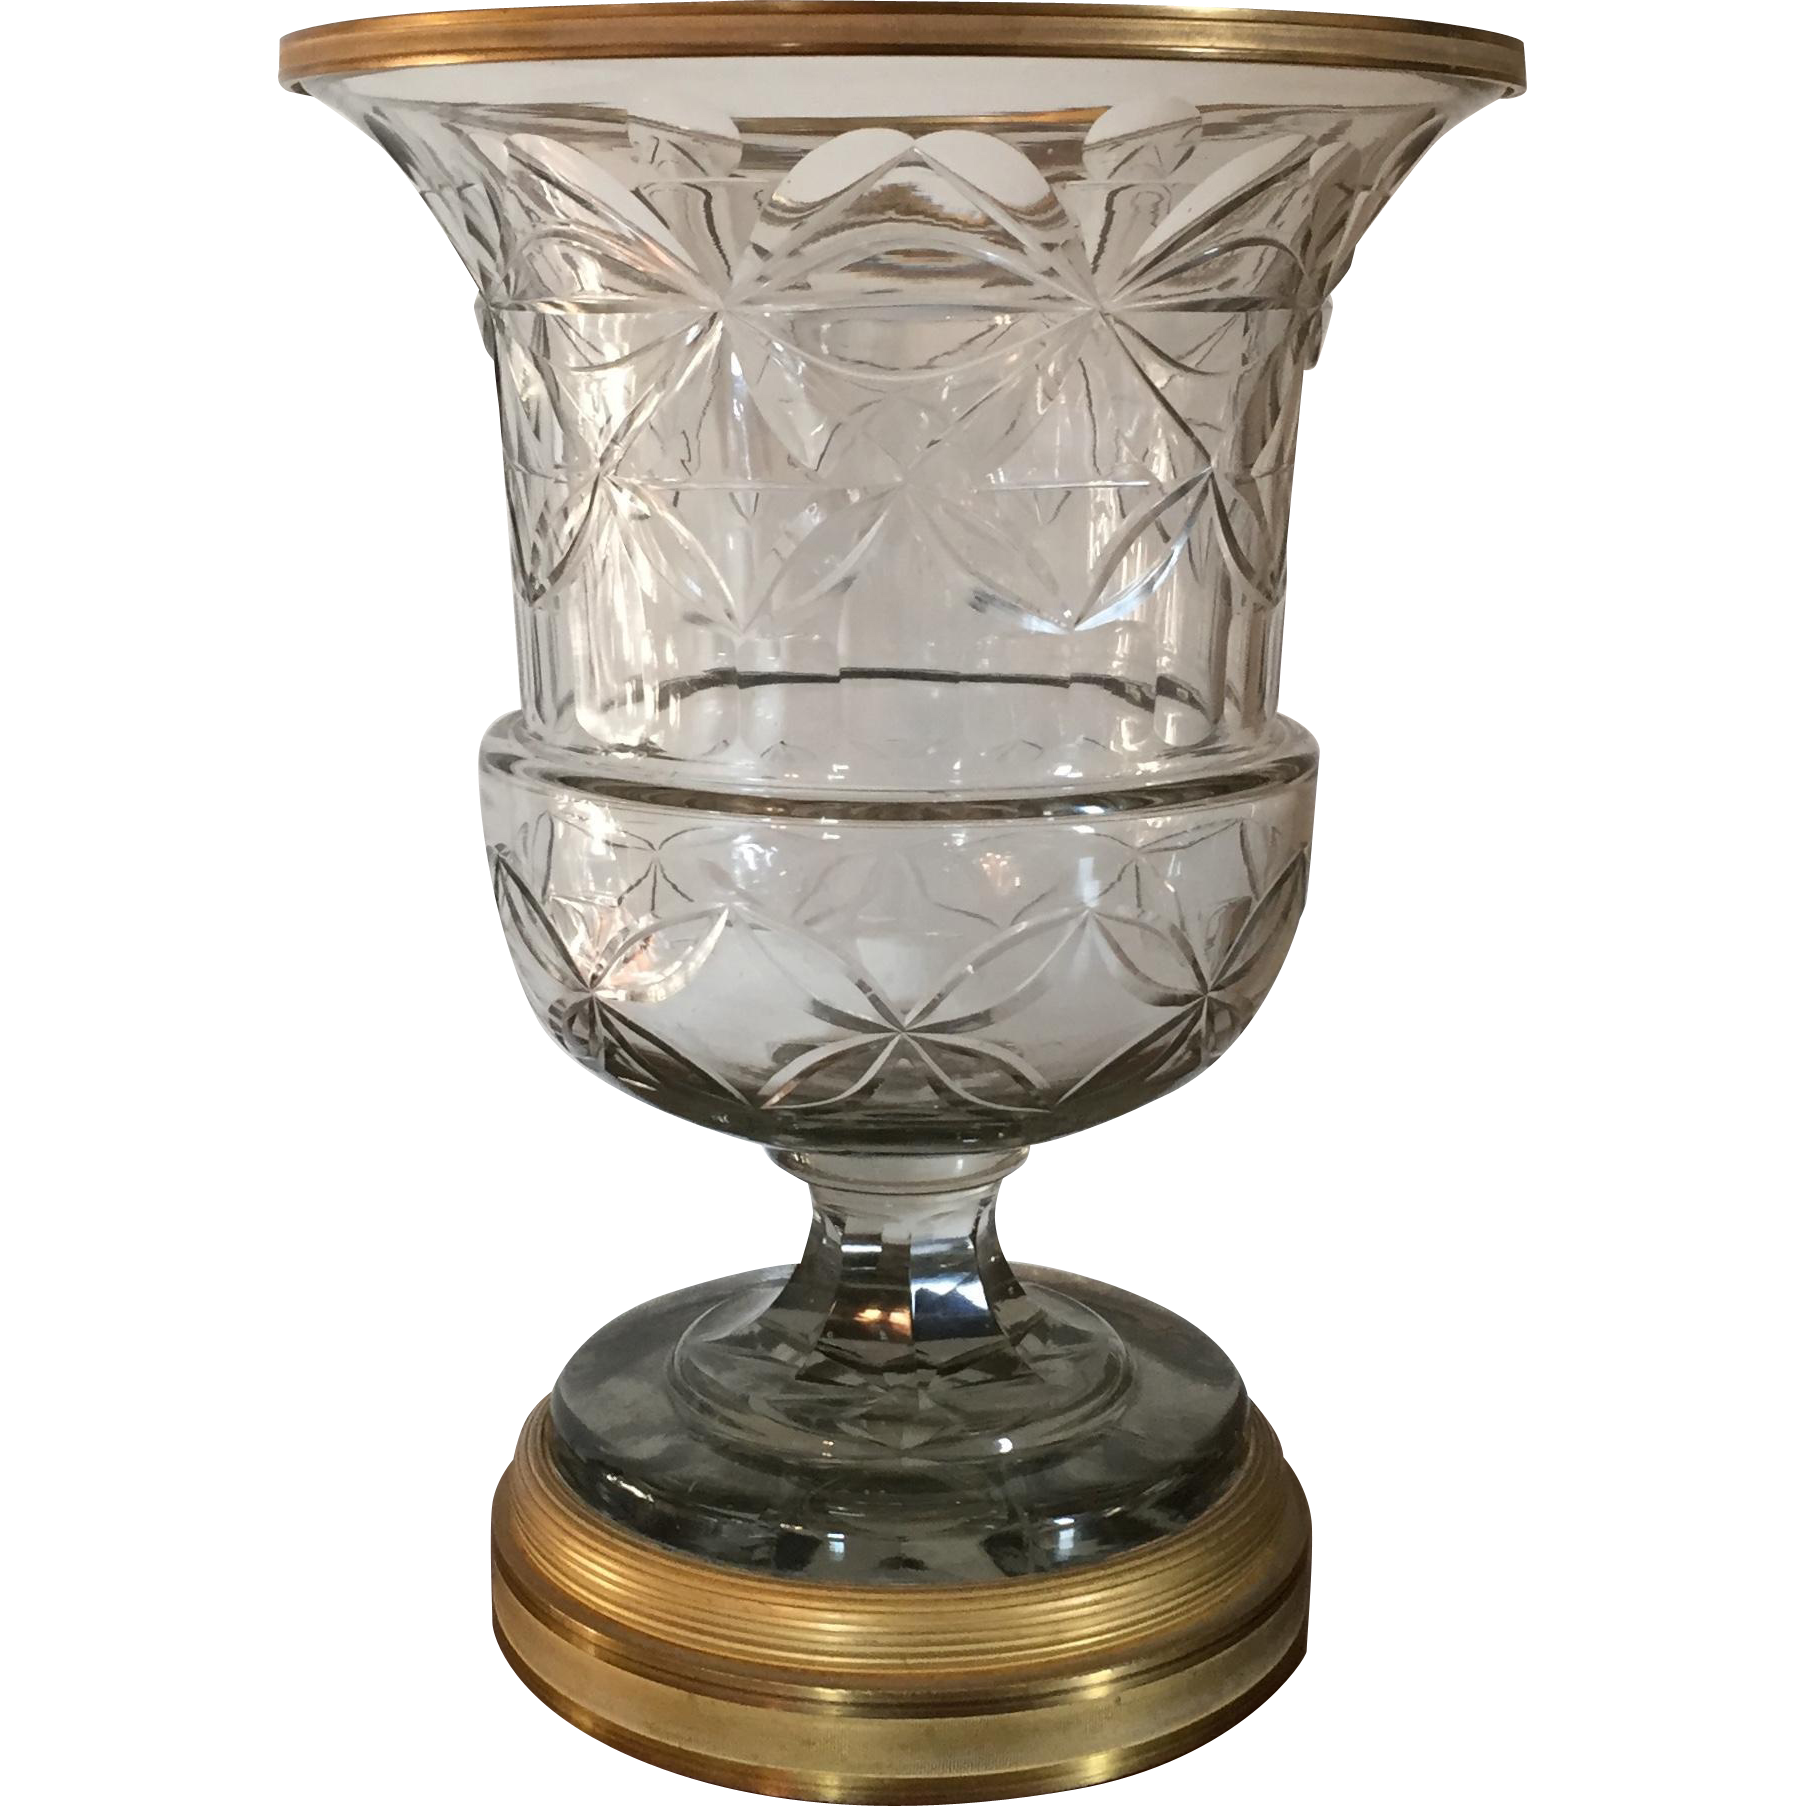 Large Antique 19th Century Anglo Irish Cut Crystal Glass Vase Urn From Classictradition On Ruby Lane